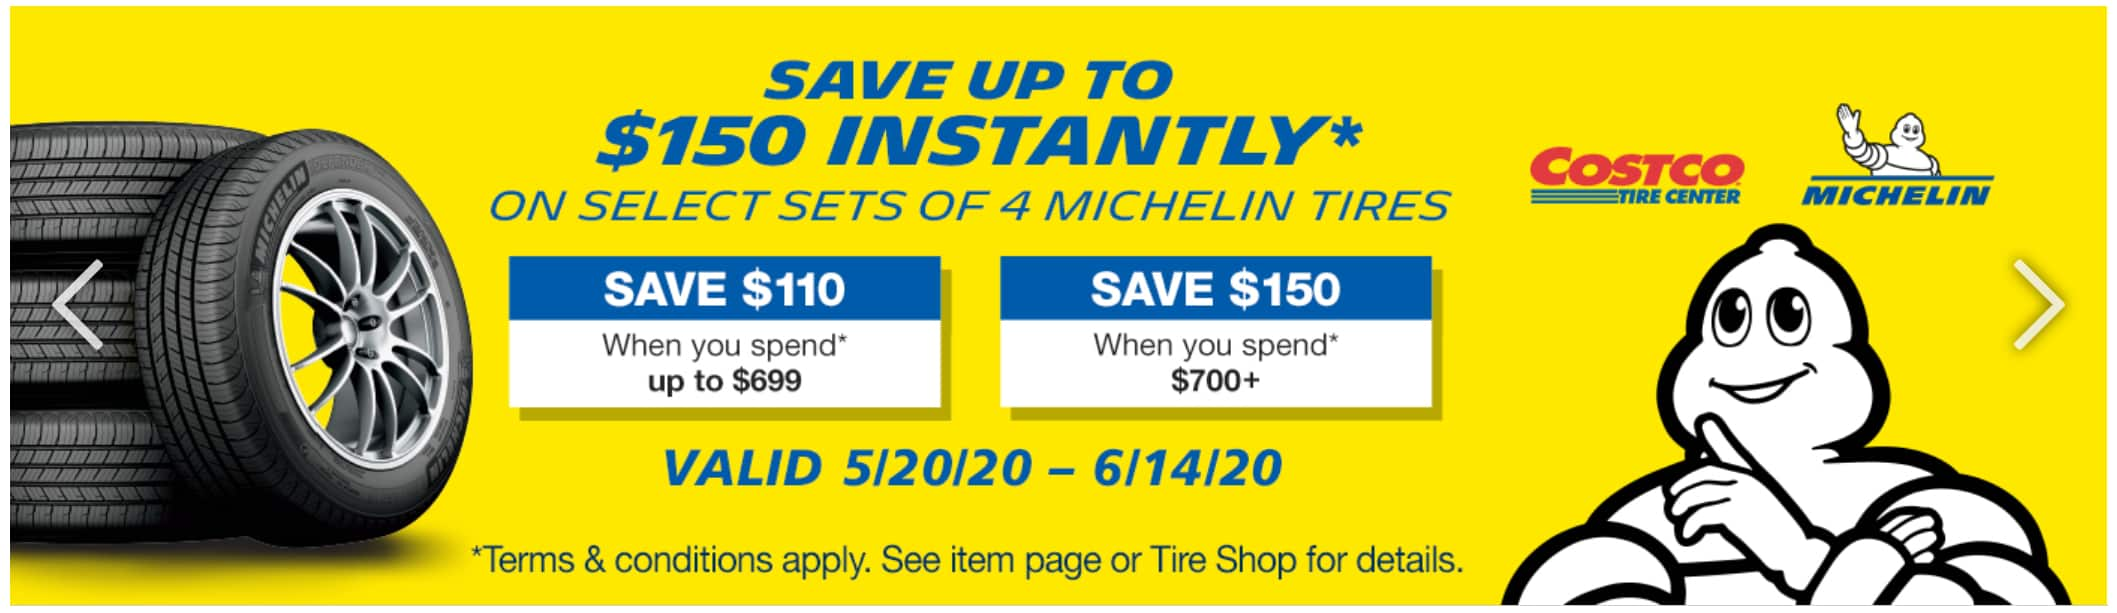 Costco Members: $150 Off Set of 4 Michelin Tires (5/20-6/14)